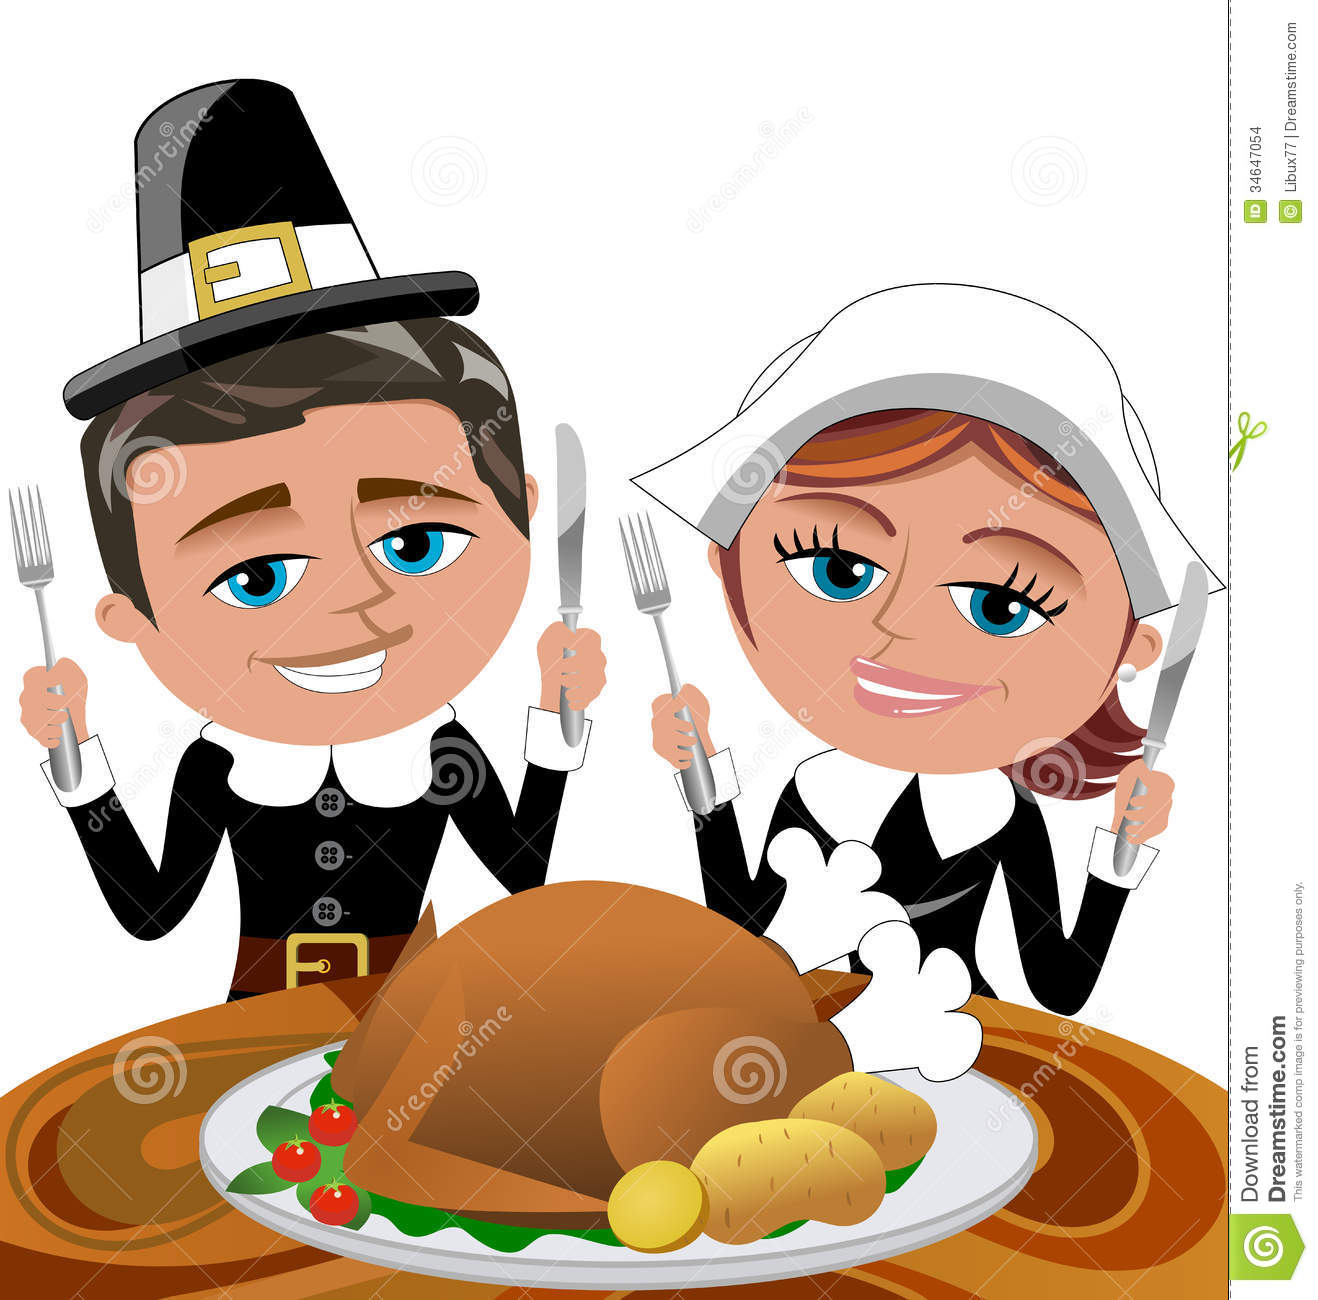 Pilgrims clipart table. Thanksgiving cliparts free download